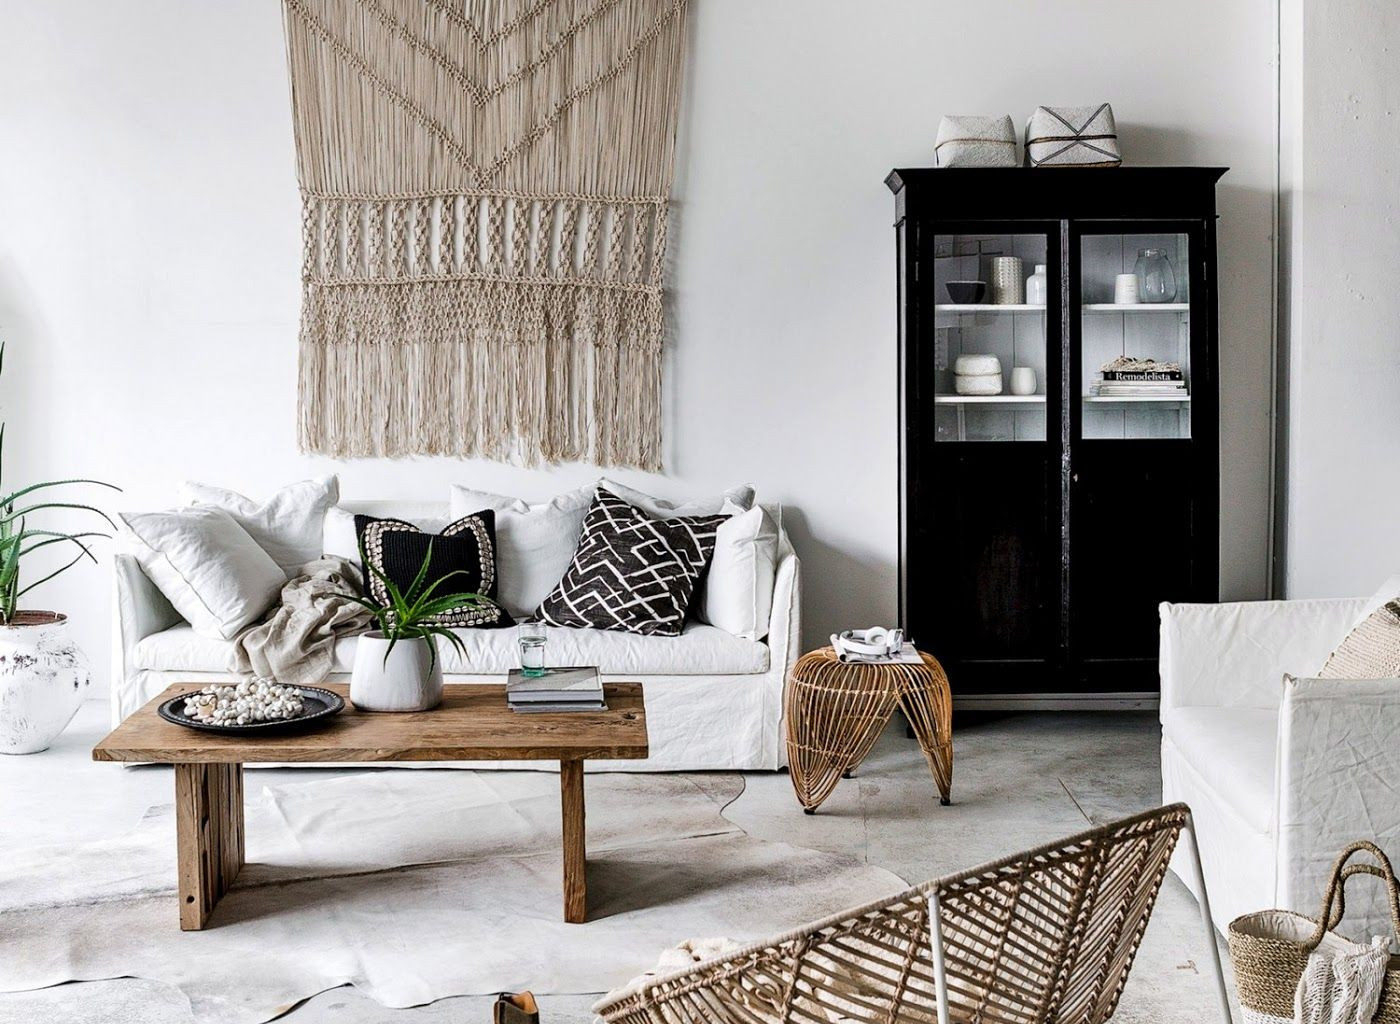 Tapestry Ideas For Decorating Your Home – Lazy Loft For 2017 Blended Fabric In His Tapestries And Wall Hangings (View 15 of 20)